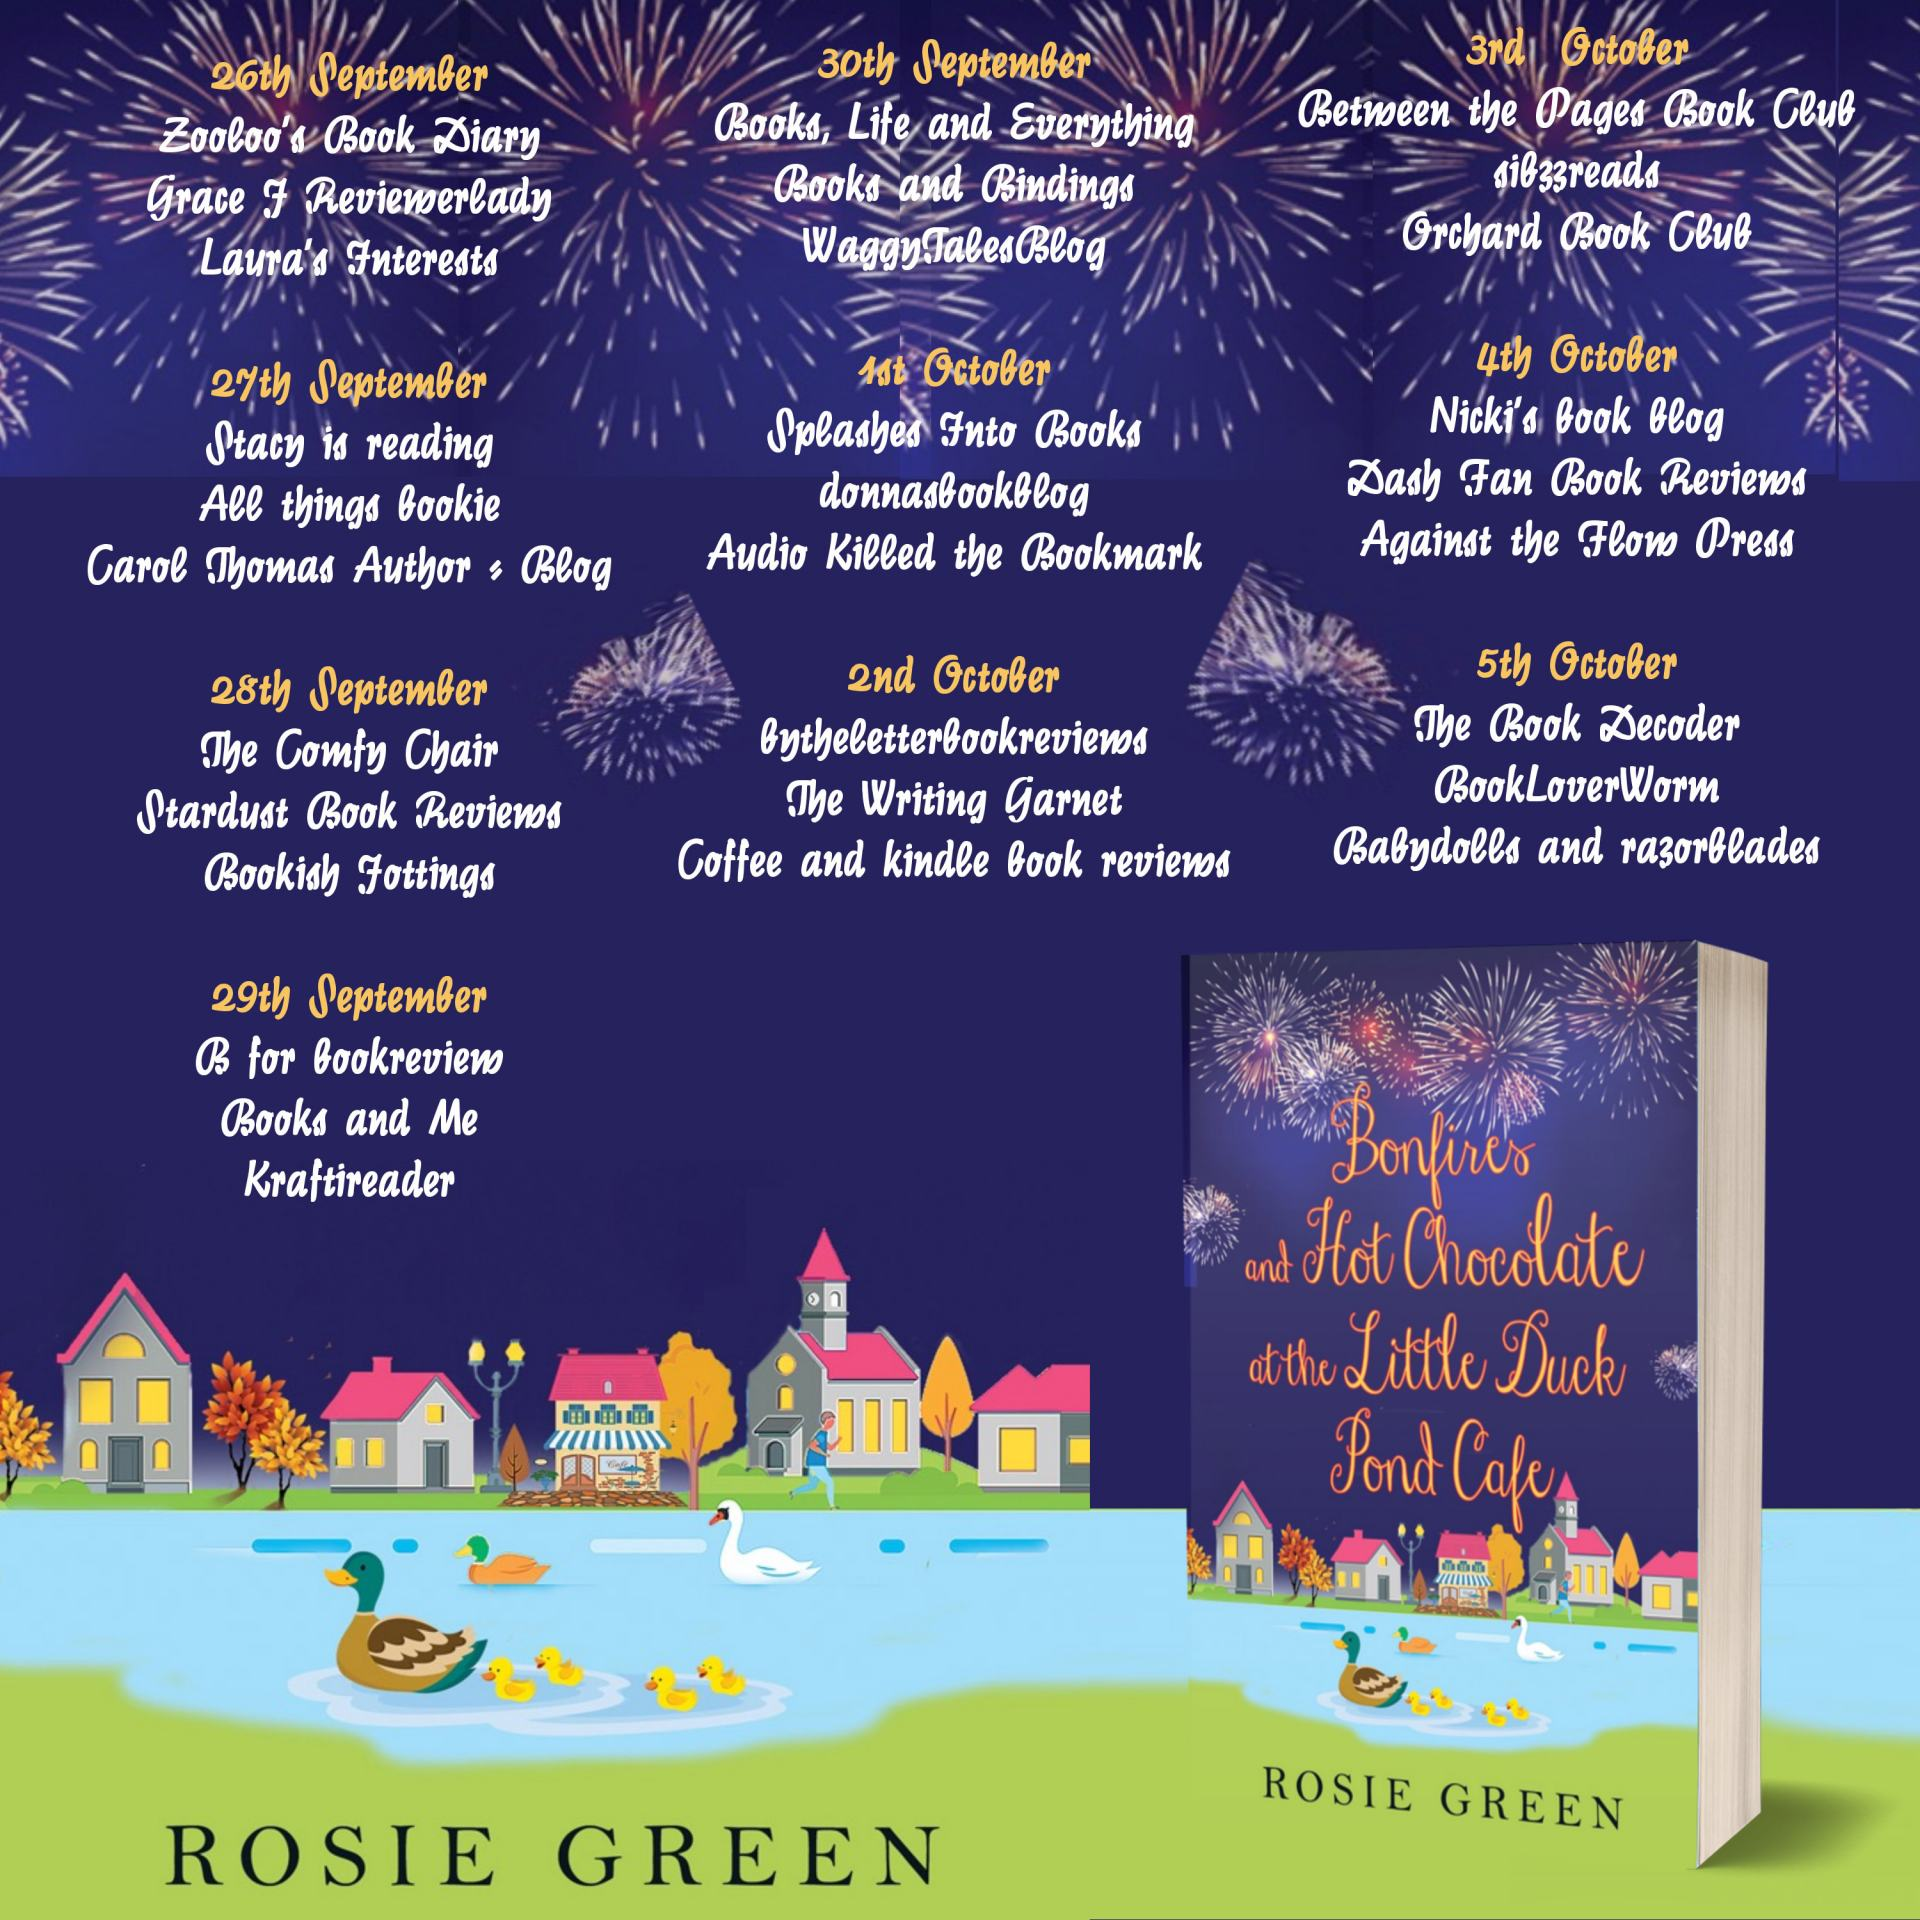 ***#BookReview of Bonfires & Hot Chocolate at The Little Duck Pond Cafe by Rosie Green @Rosie_Green1988 @rararesources